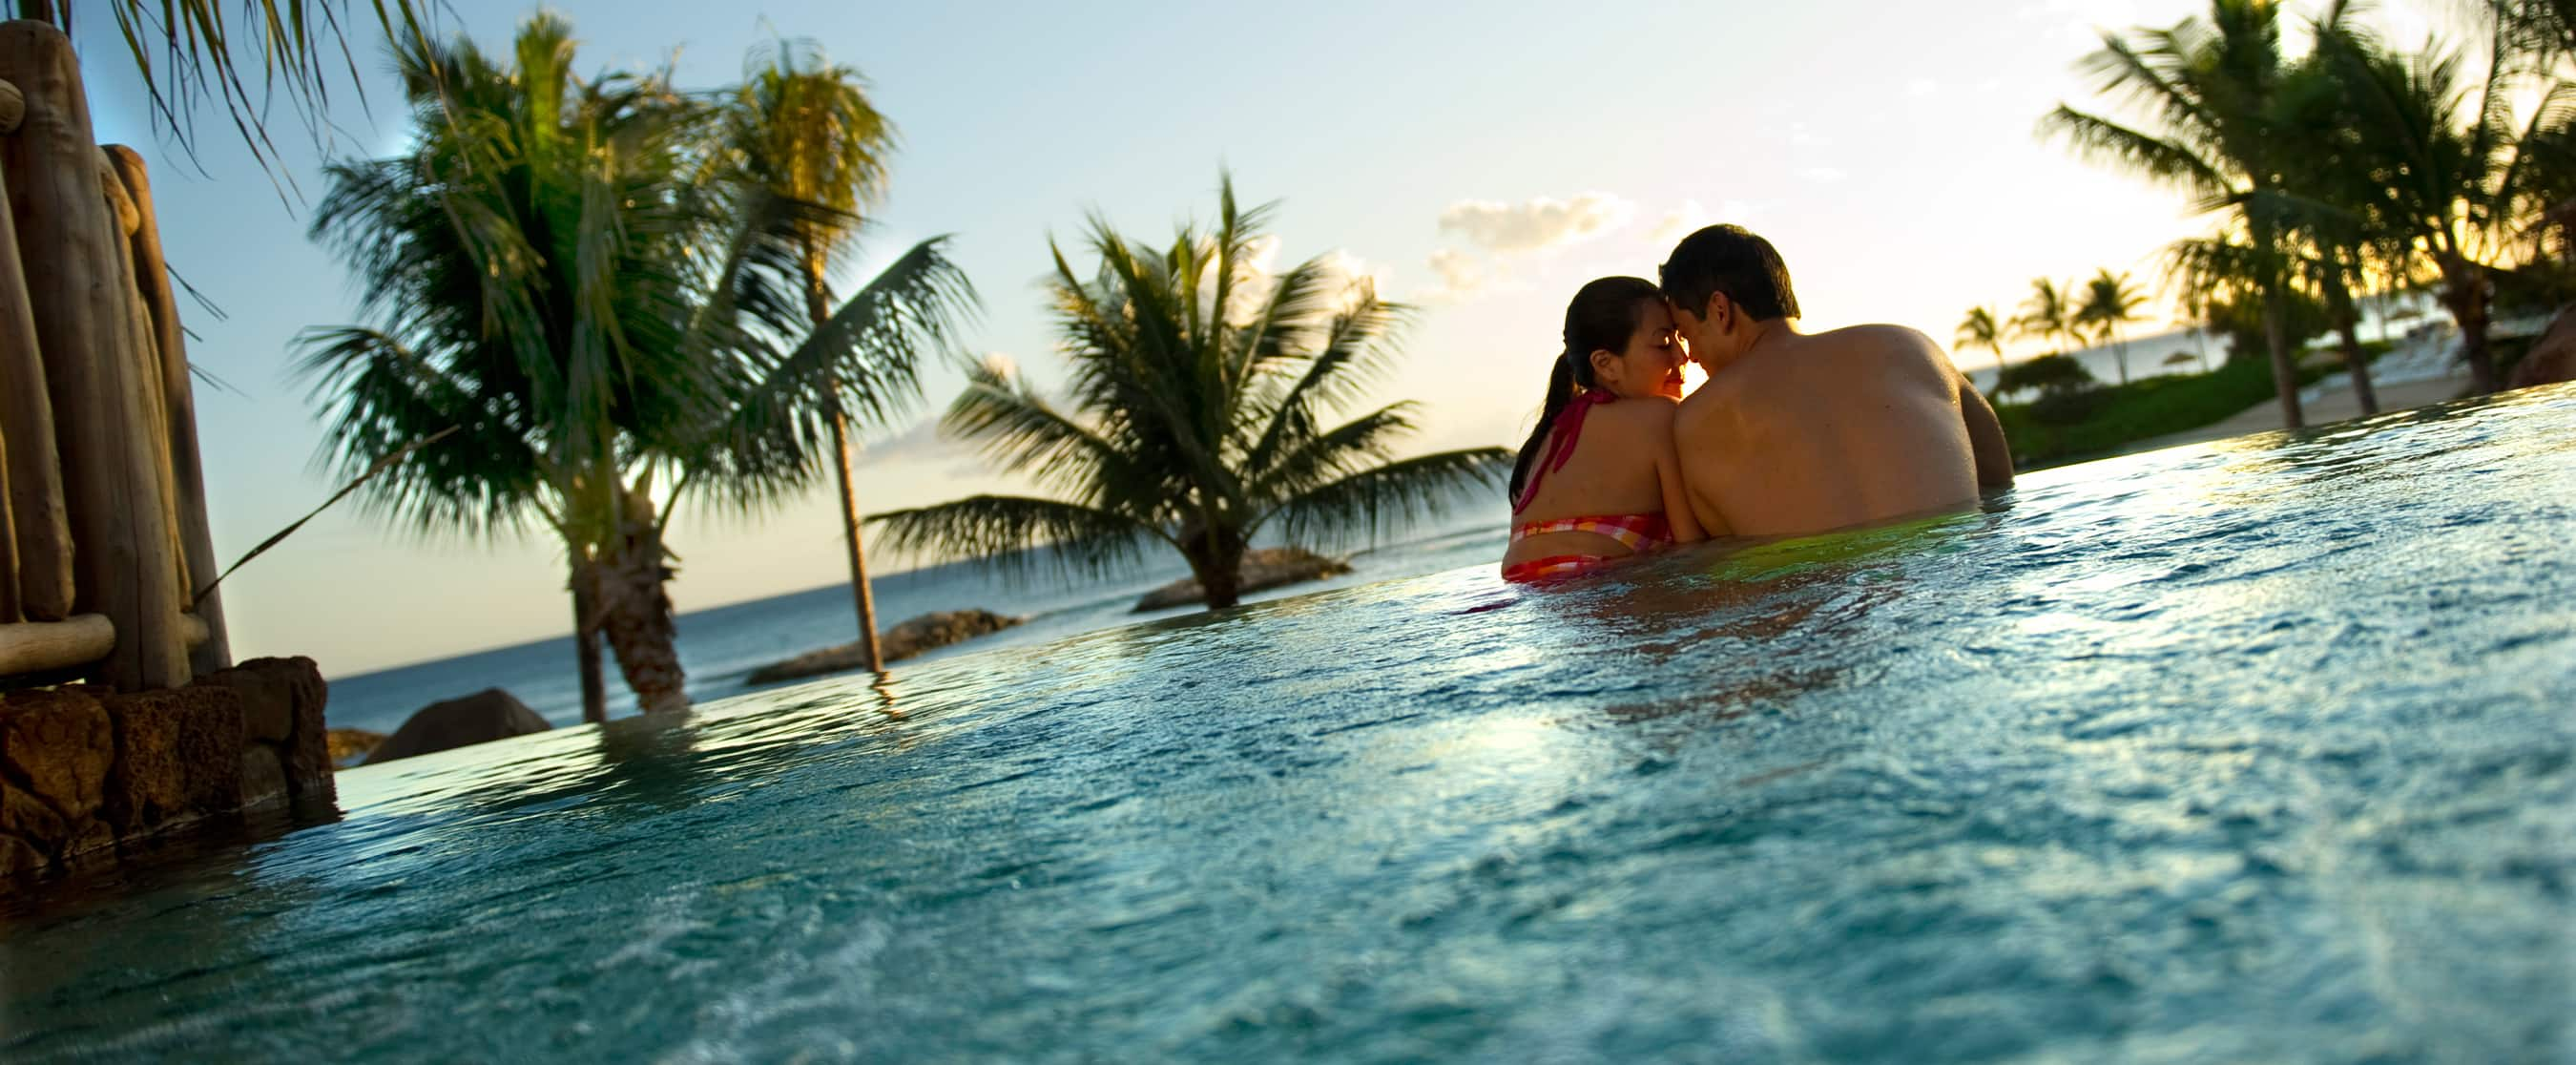 A young couple embraces while unwinding in a whirlpool spa as the sun sets along the oceanic horizon